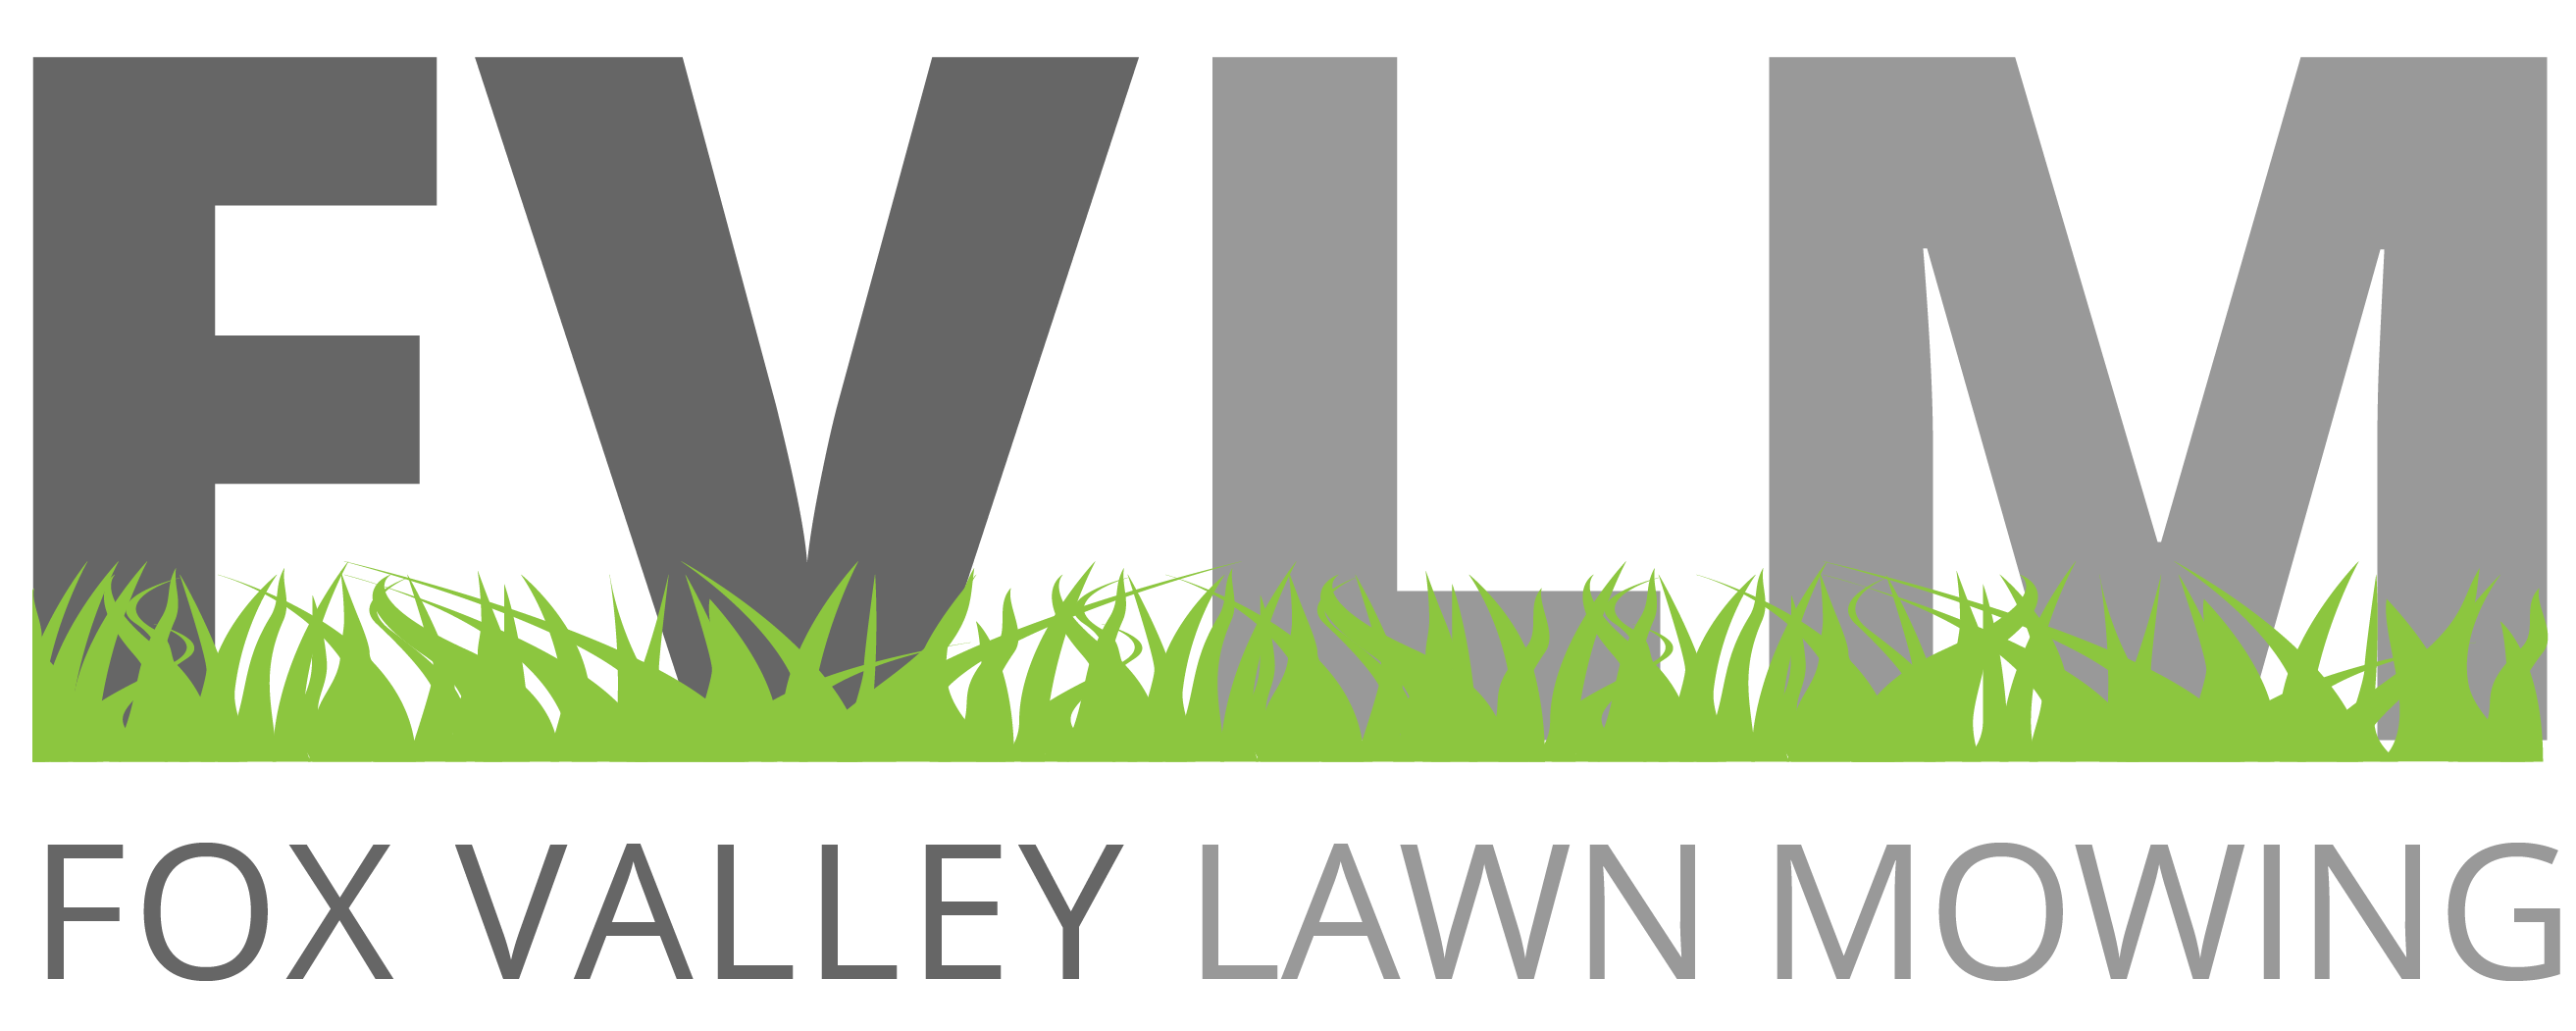 Fox Valley Lawn Mowing